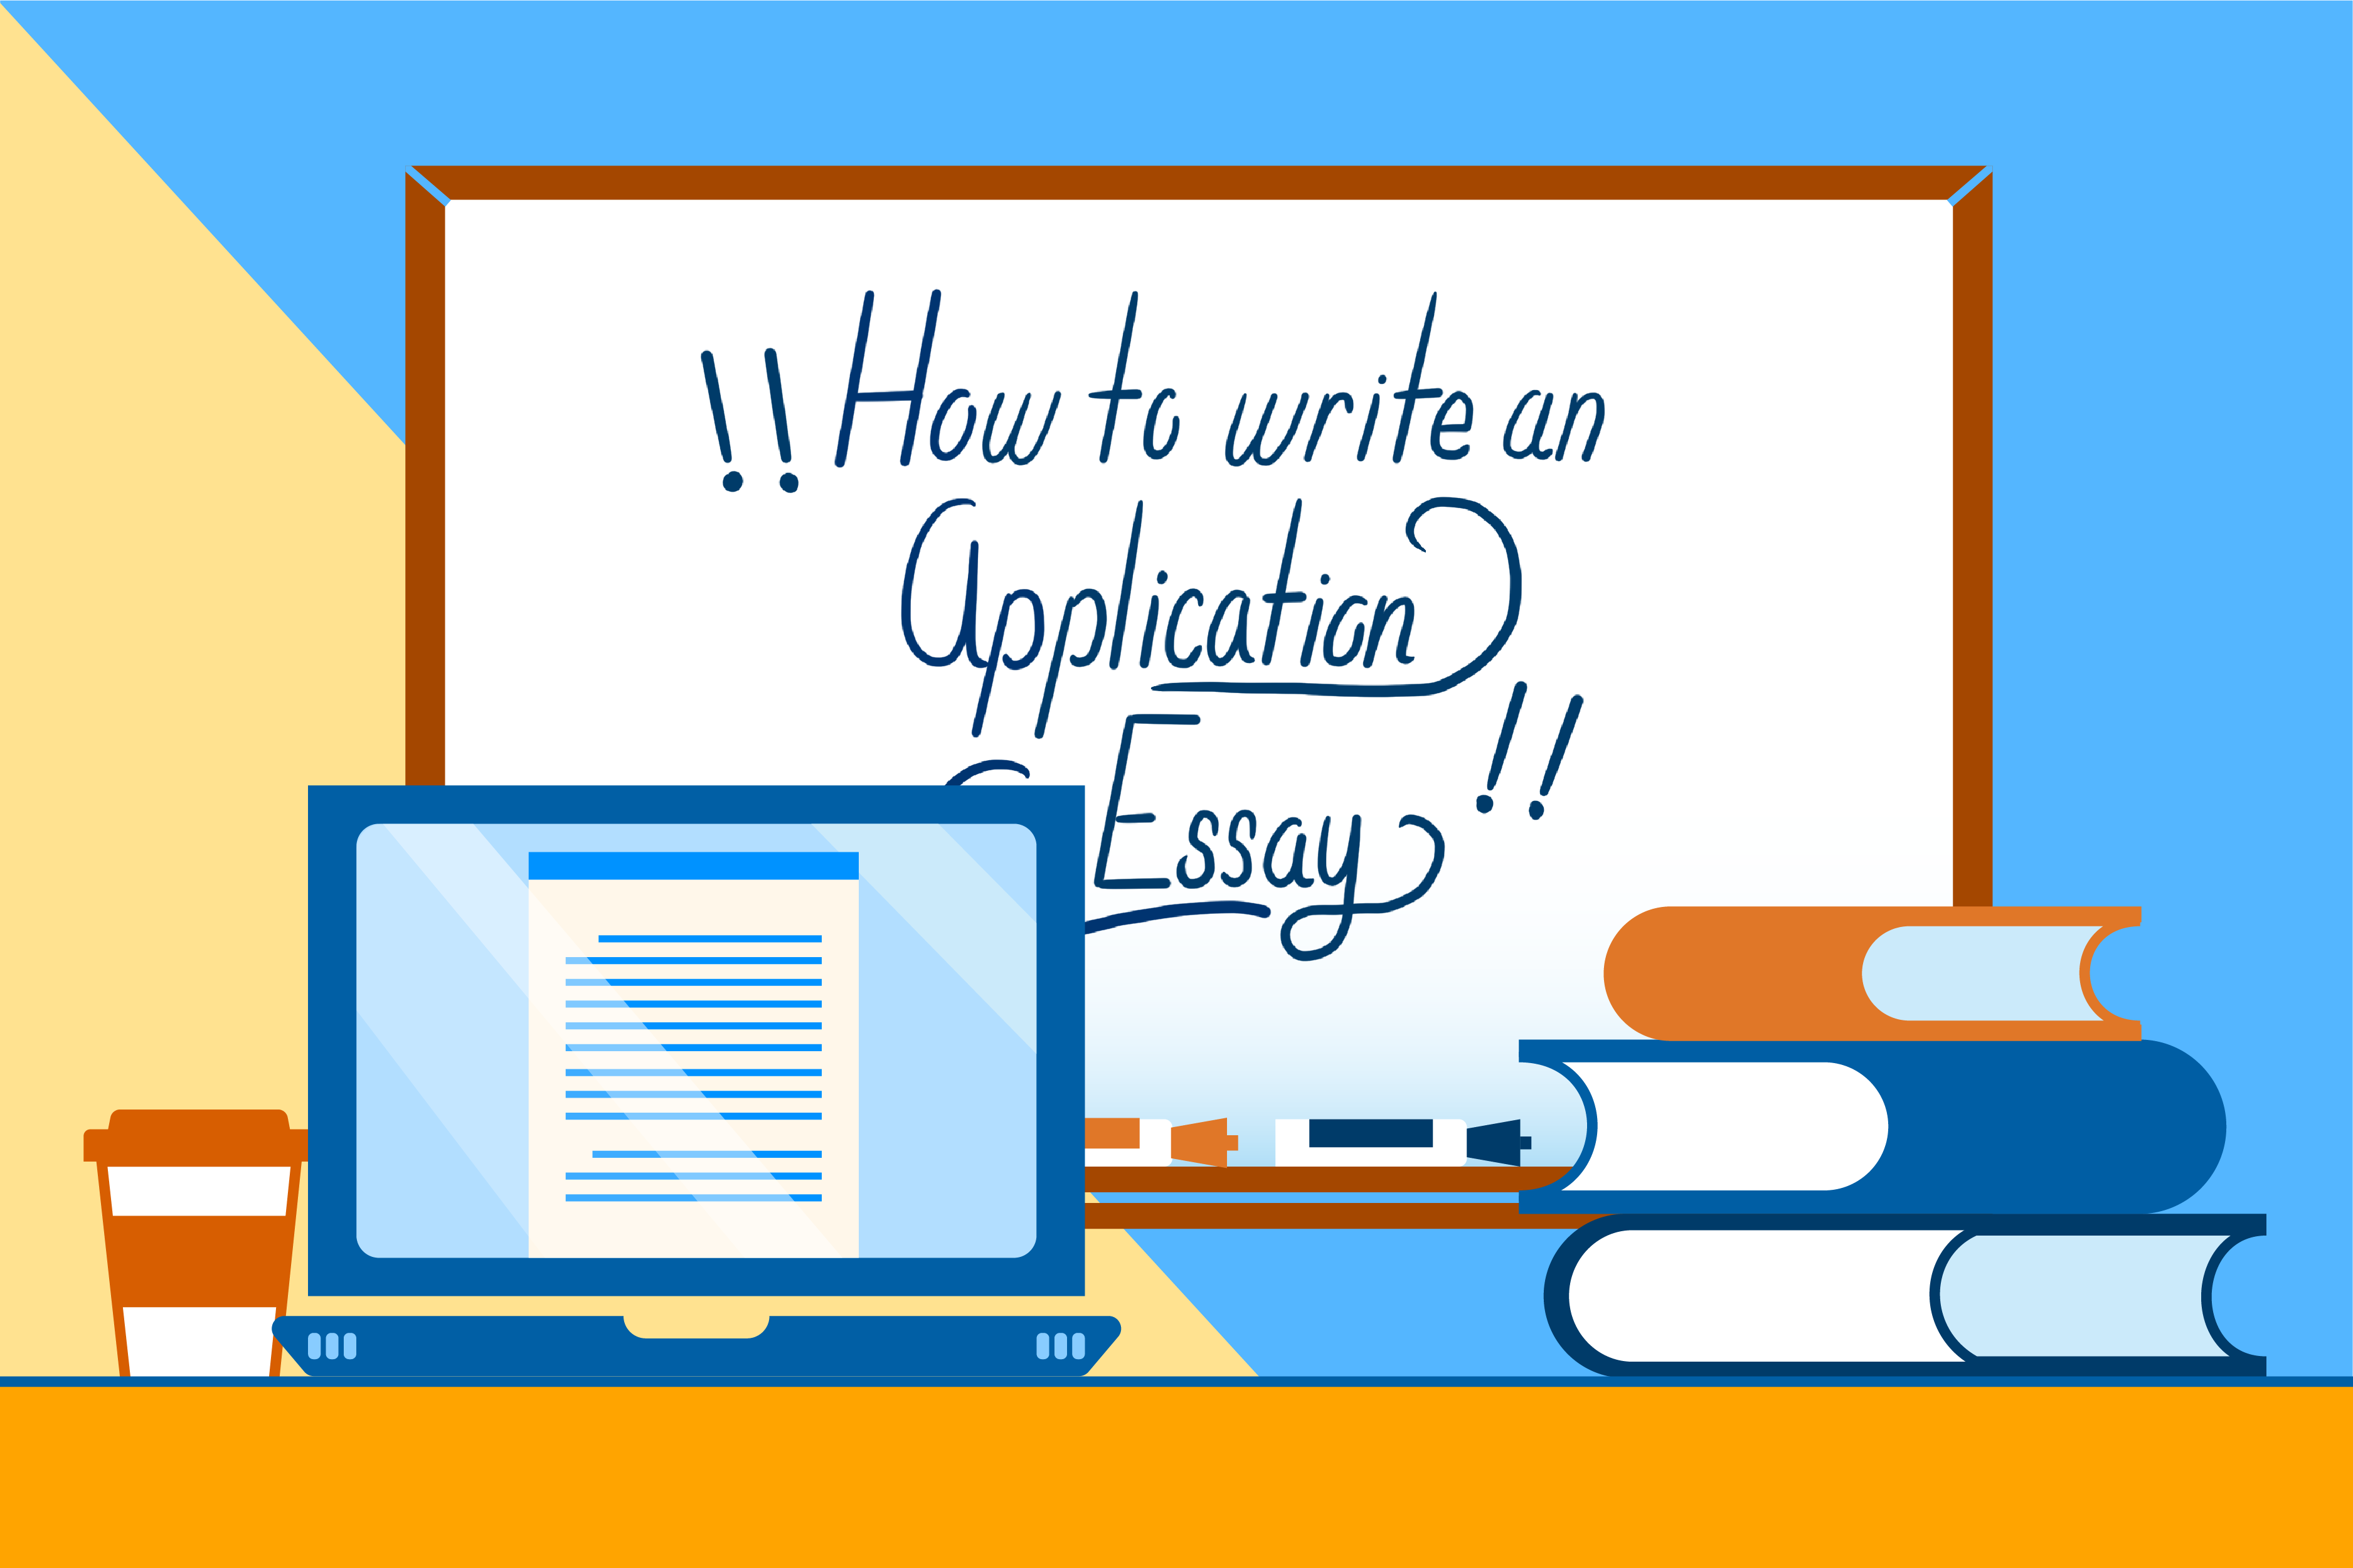 how to write an application essay graphic with a laptop and books in the foreground